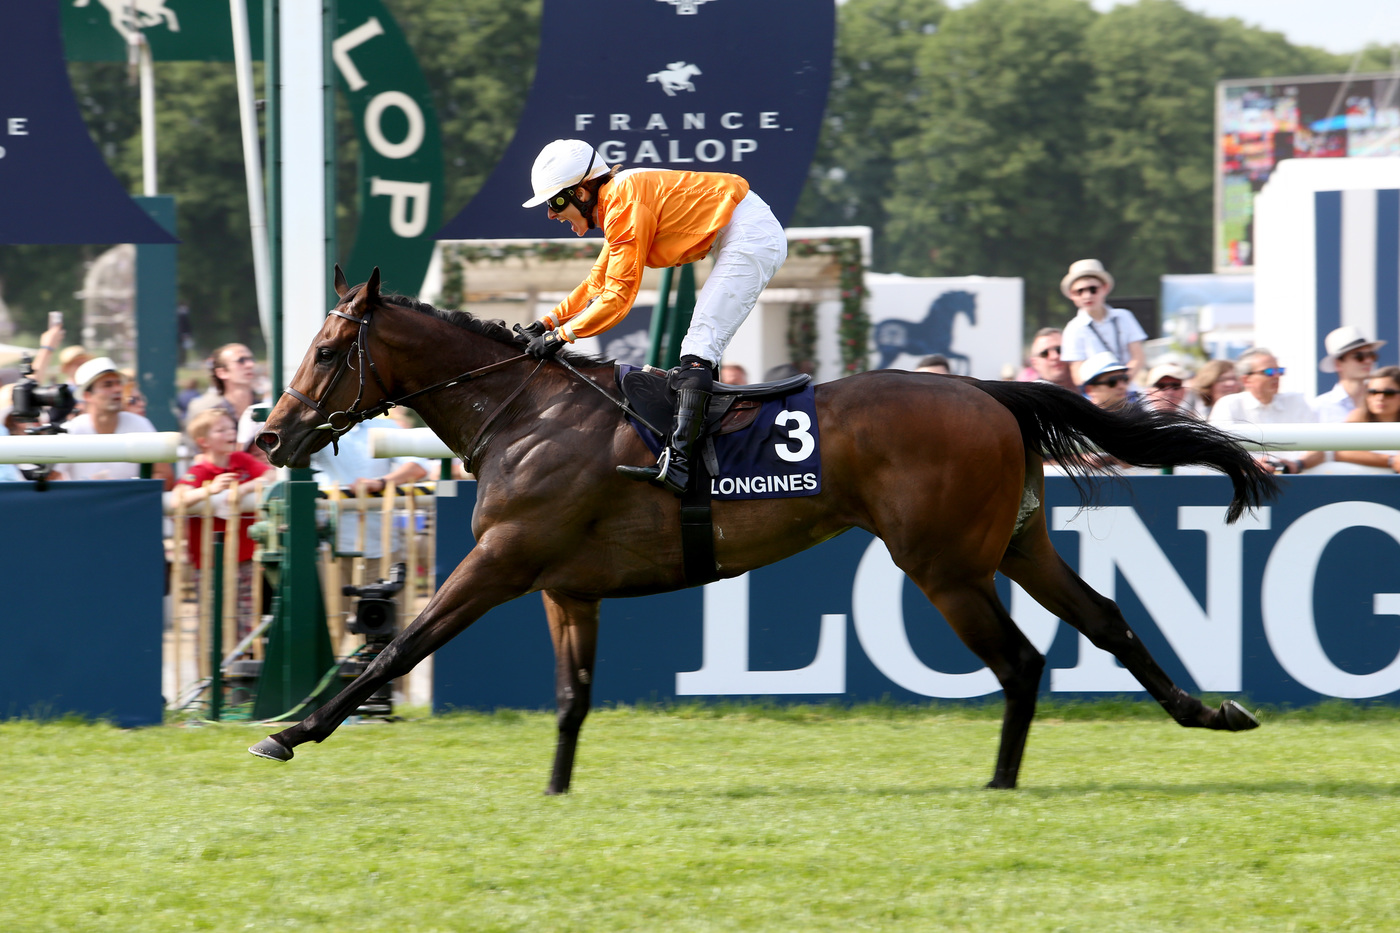 Longines Flat Racing Event: The Prix de Diane Longines – 45'000 spectators, 9 races, 1 Queen of Elegance and 1 King of the Prix de Diane Longines 14